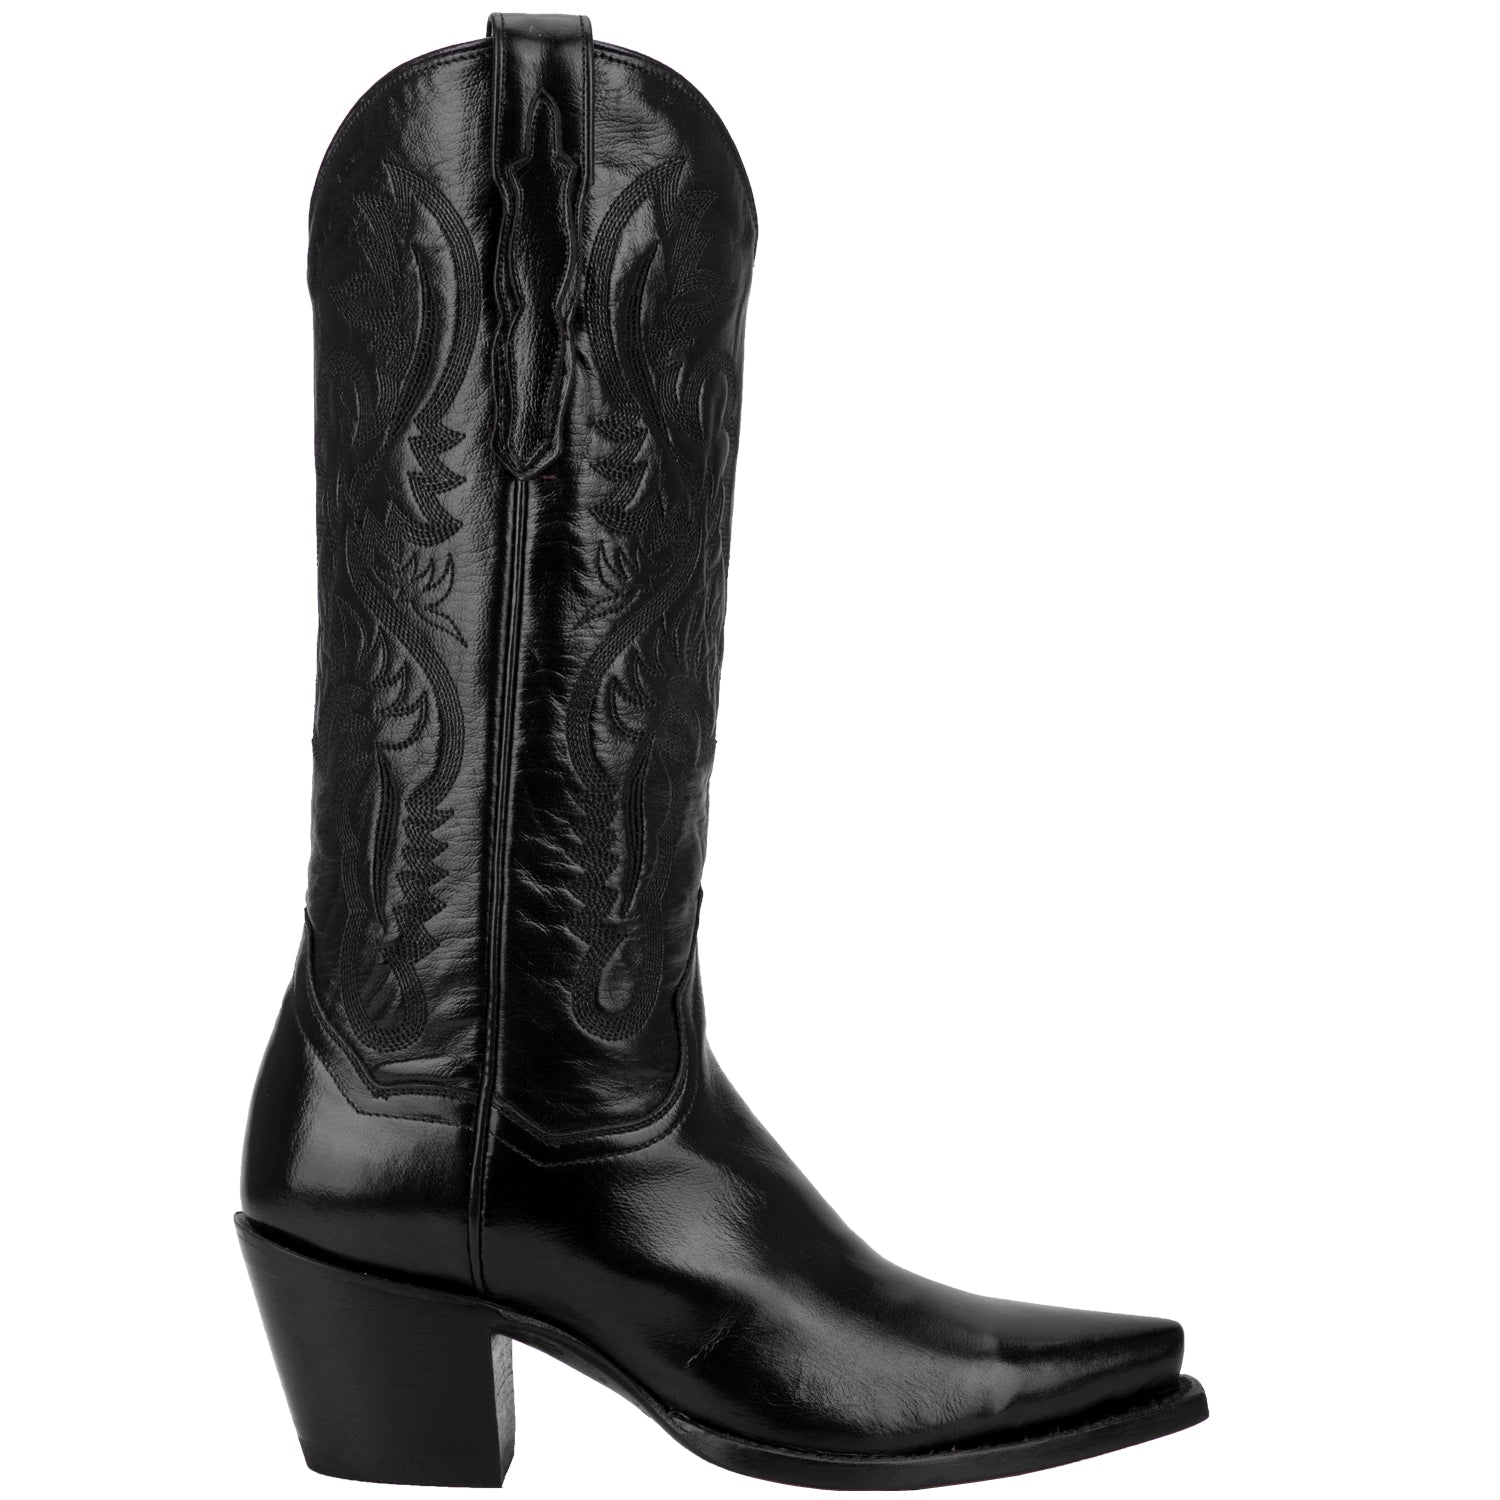 MARIA LEATHER BOOT 4253907419178